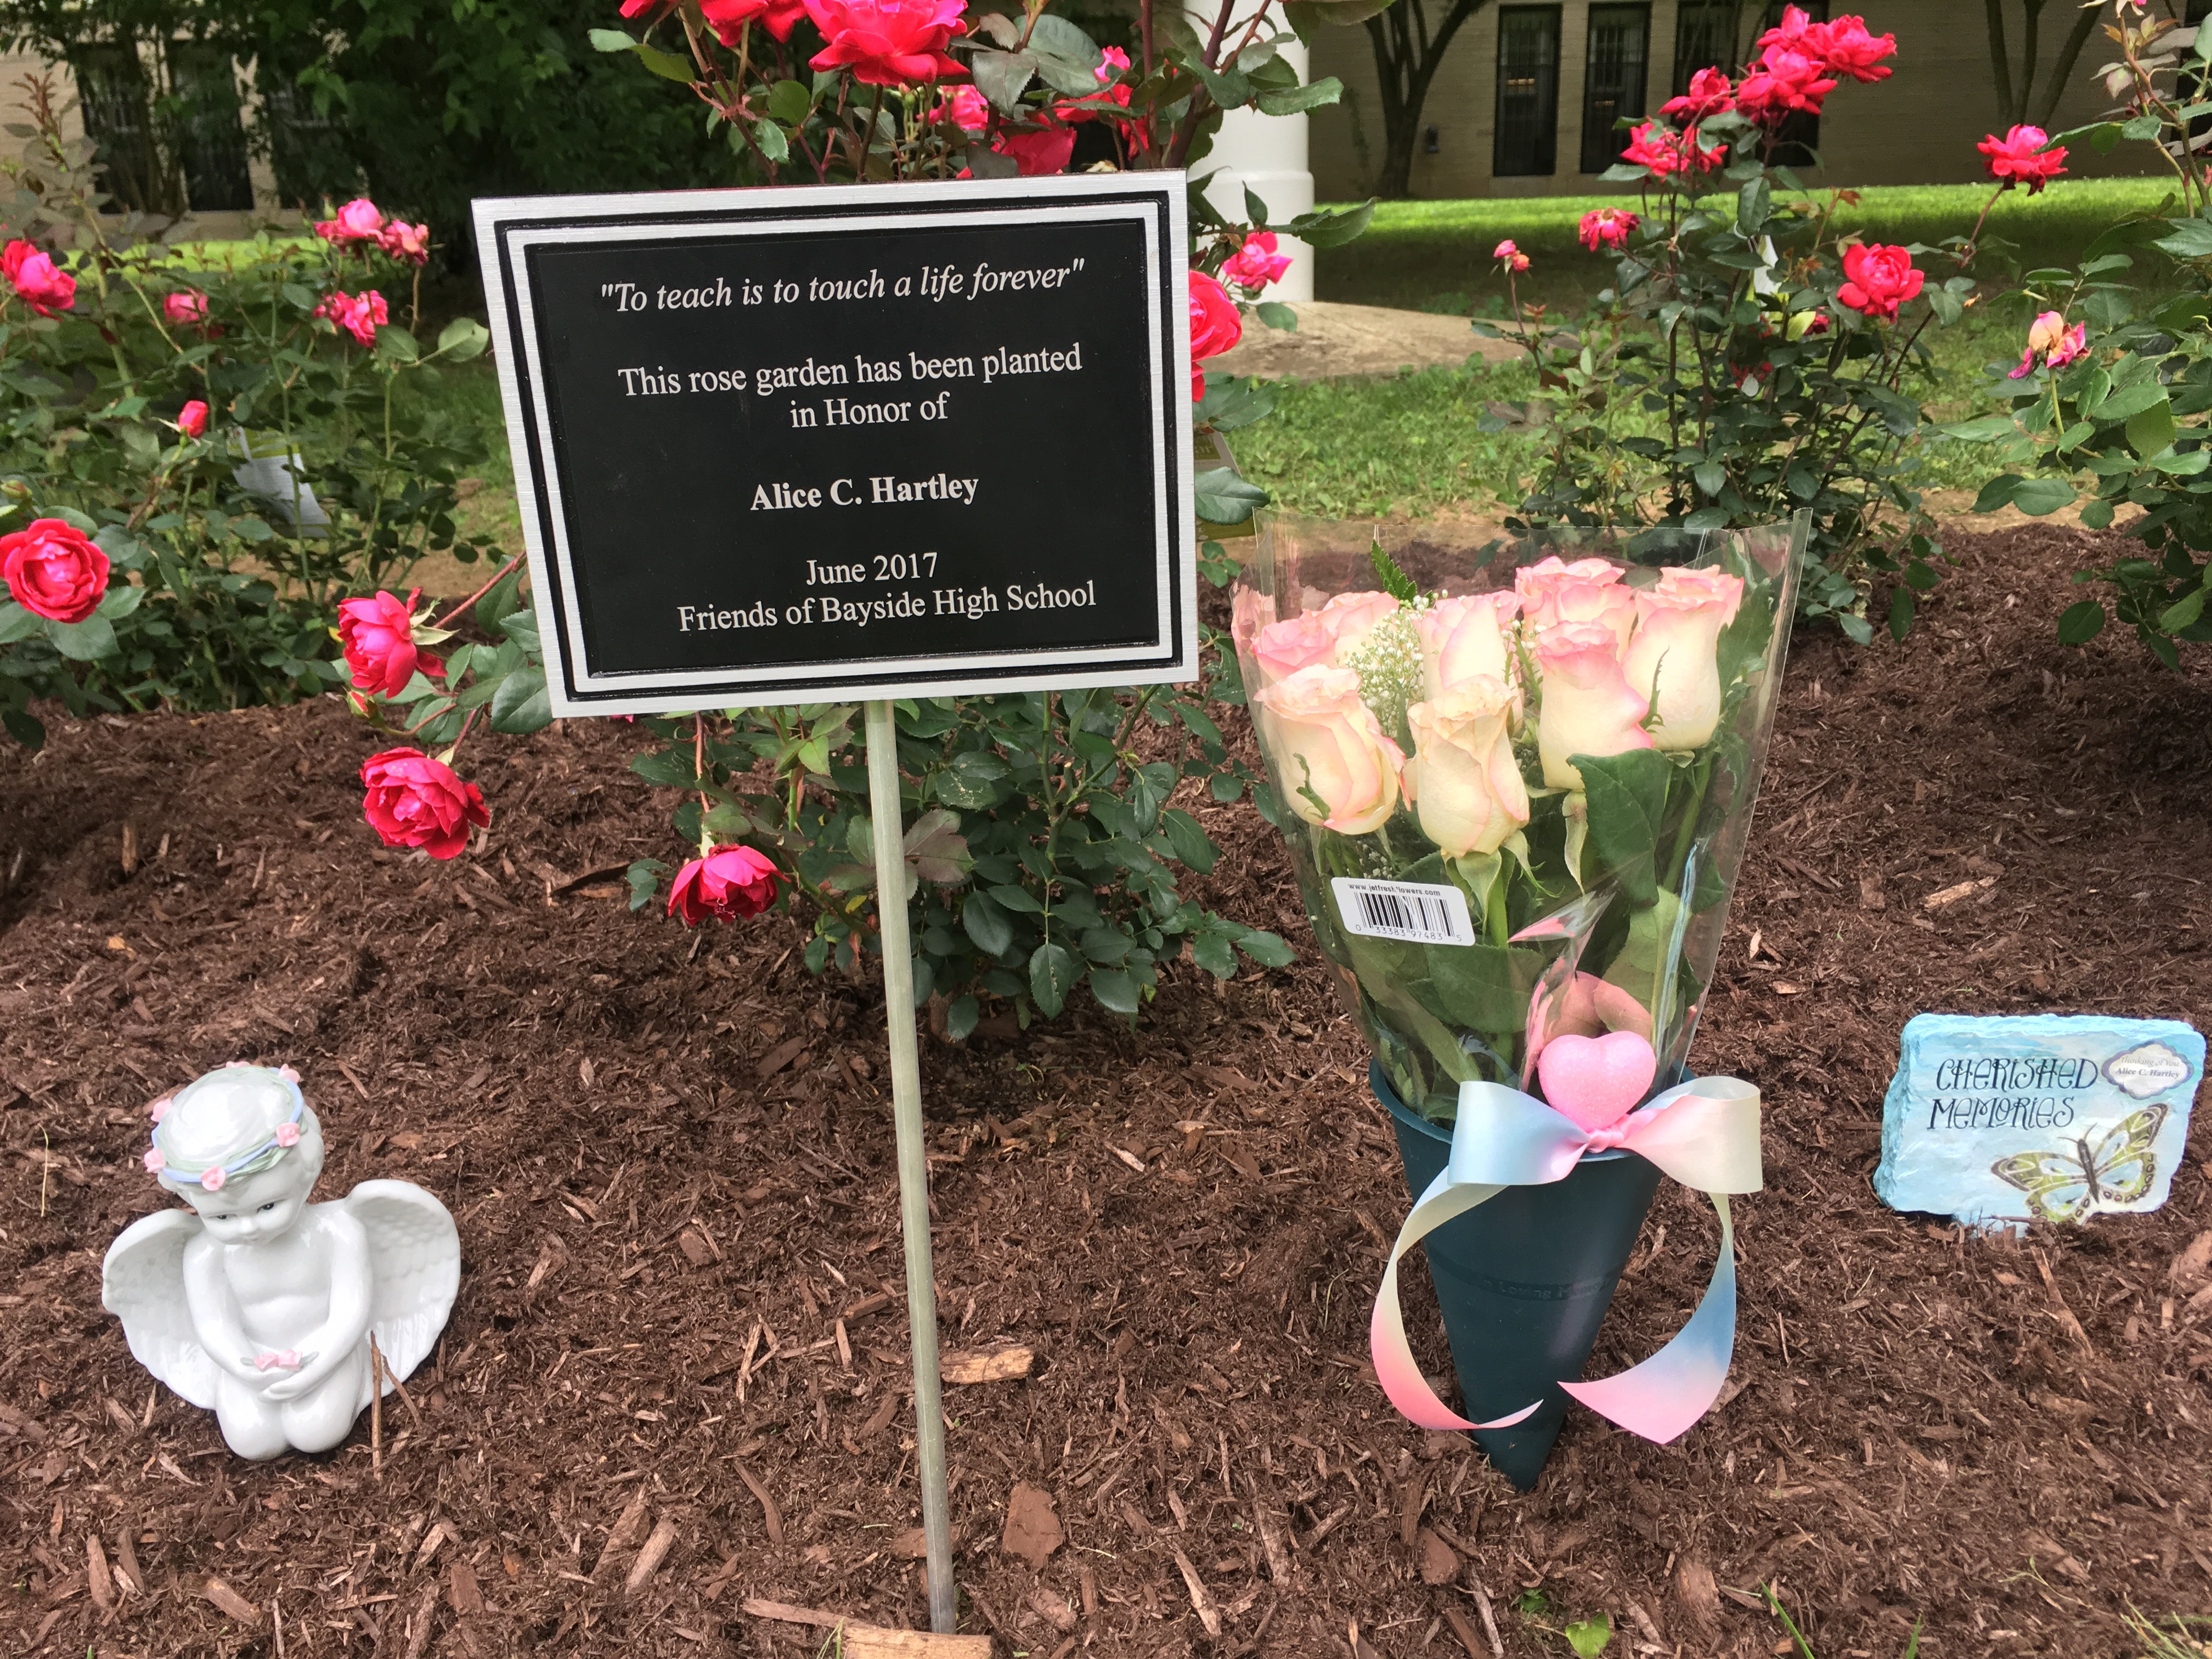 Community Affairs: Bayside High School Rose Garden Dedication